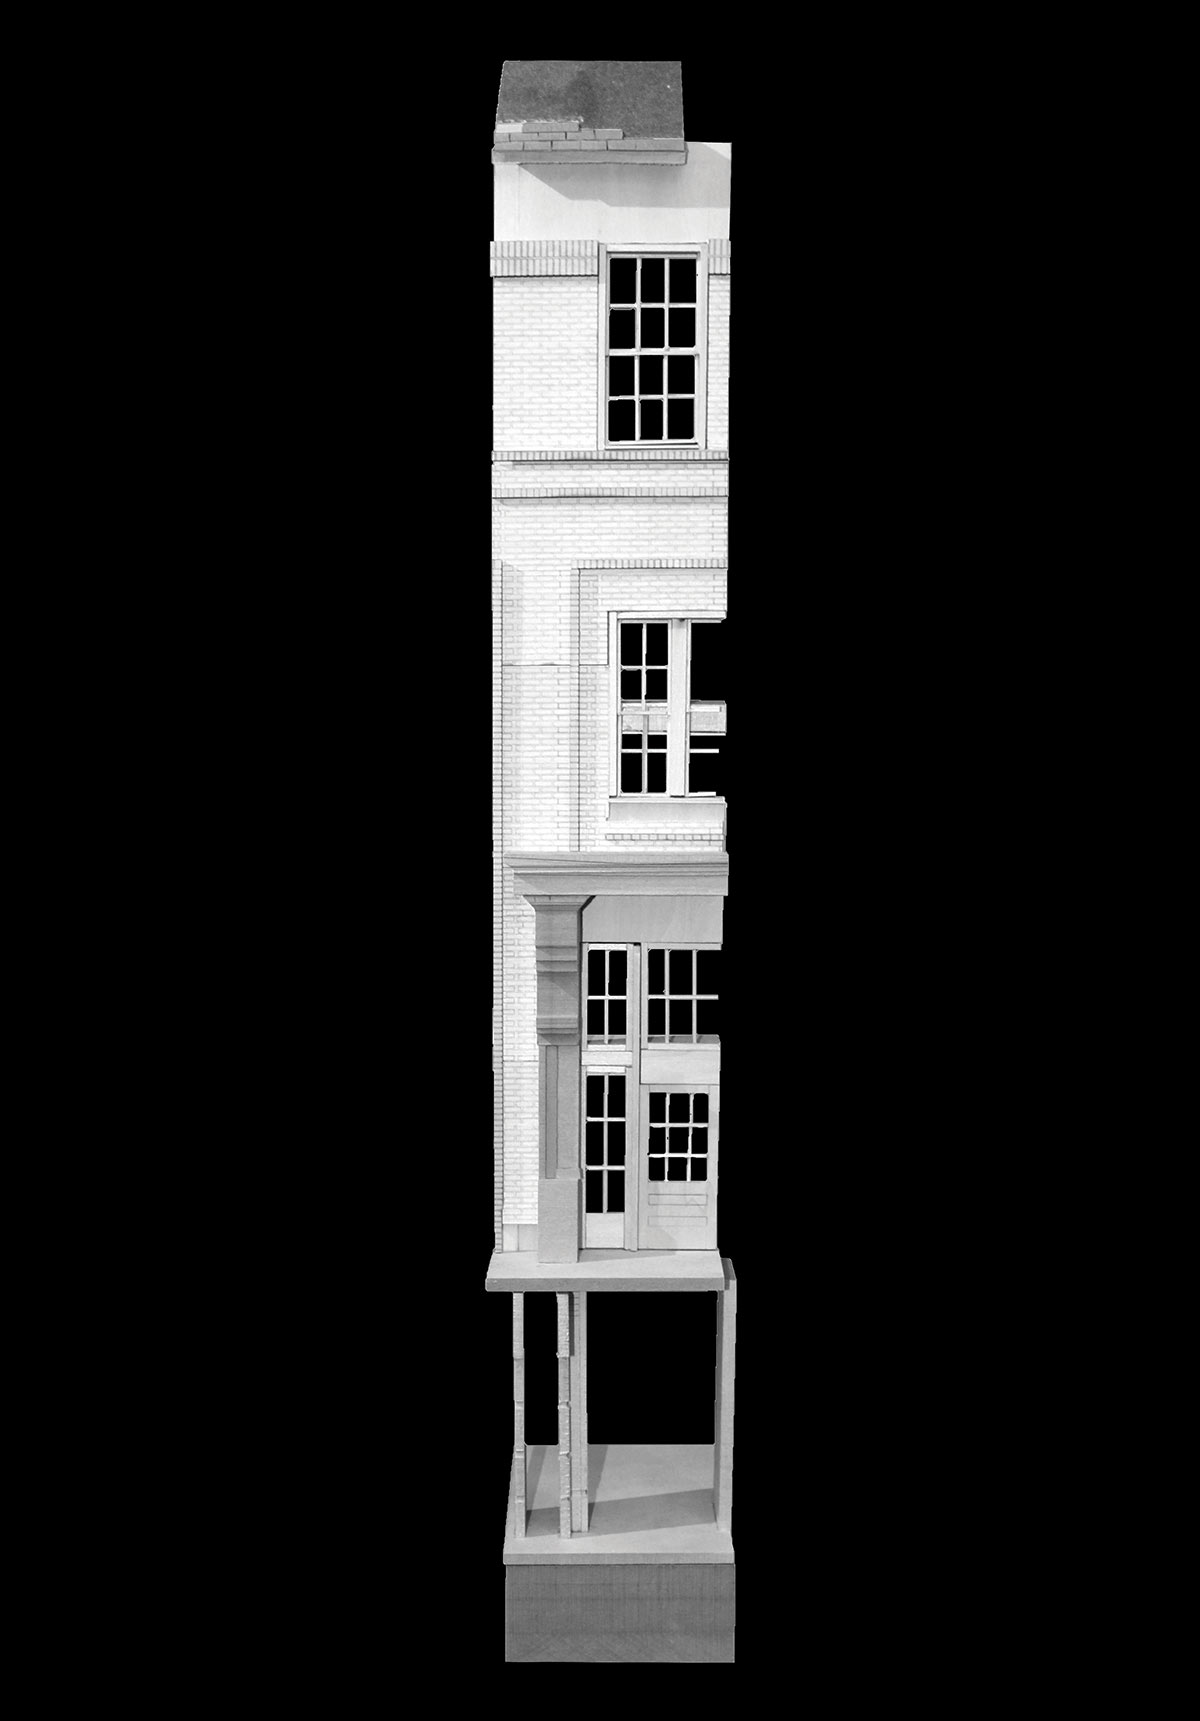 black and white image of vertical section of a 3-story building